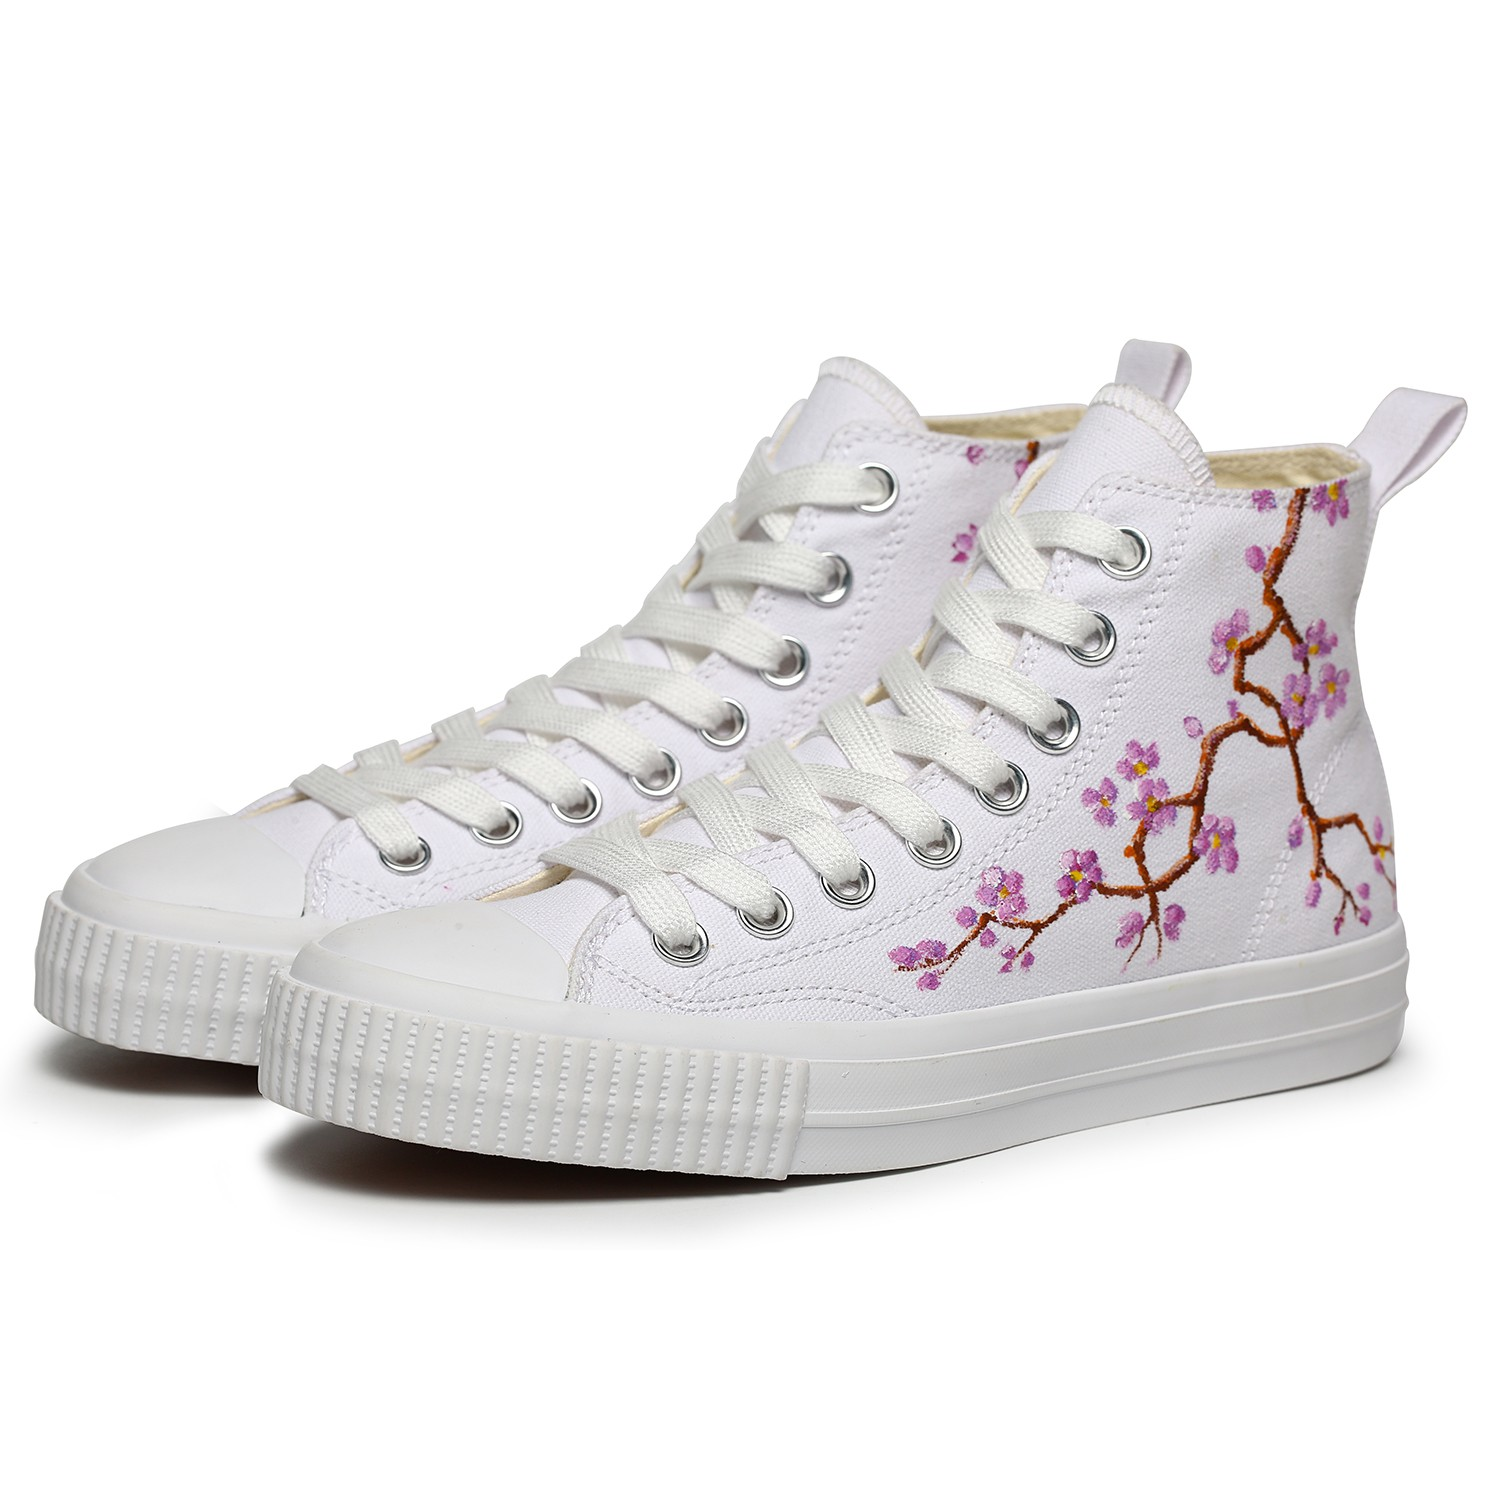 OMINE WP2004 Flat Shoes Men High Top Flower Painted Shoes Canvas - Black US 9